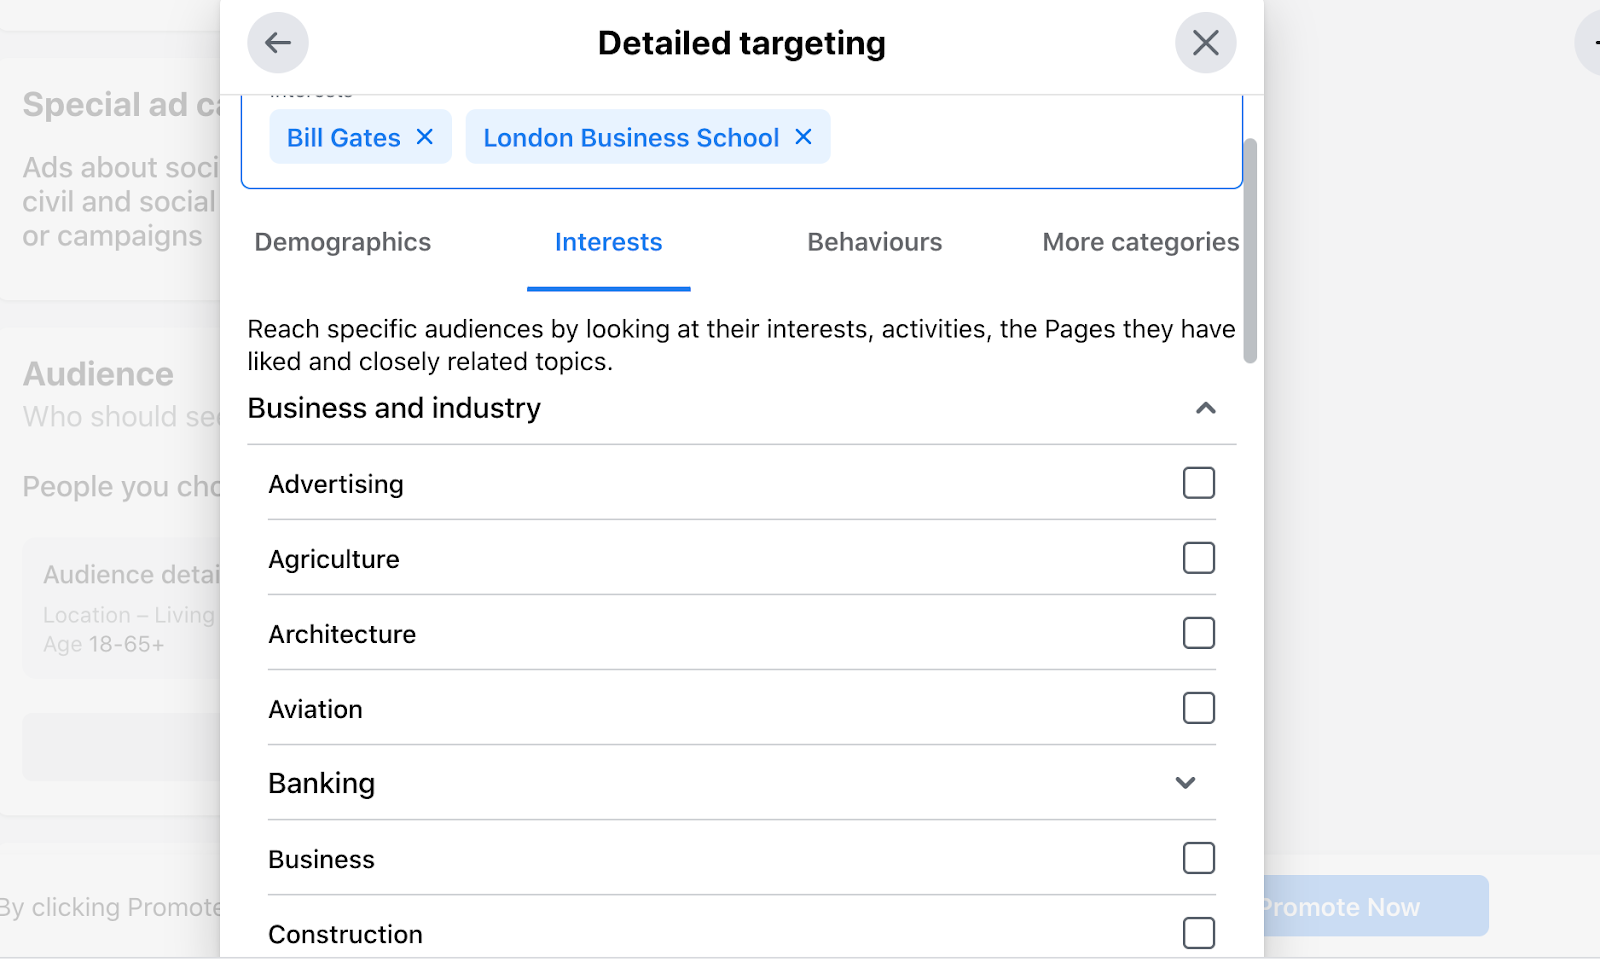 facebook detailed targeting screenshot